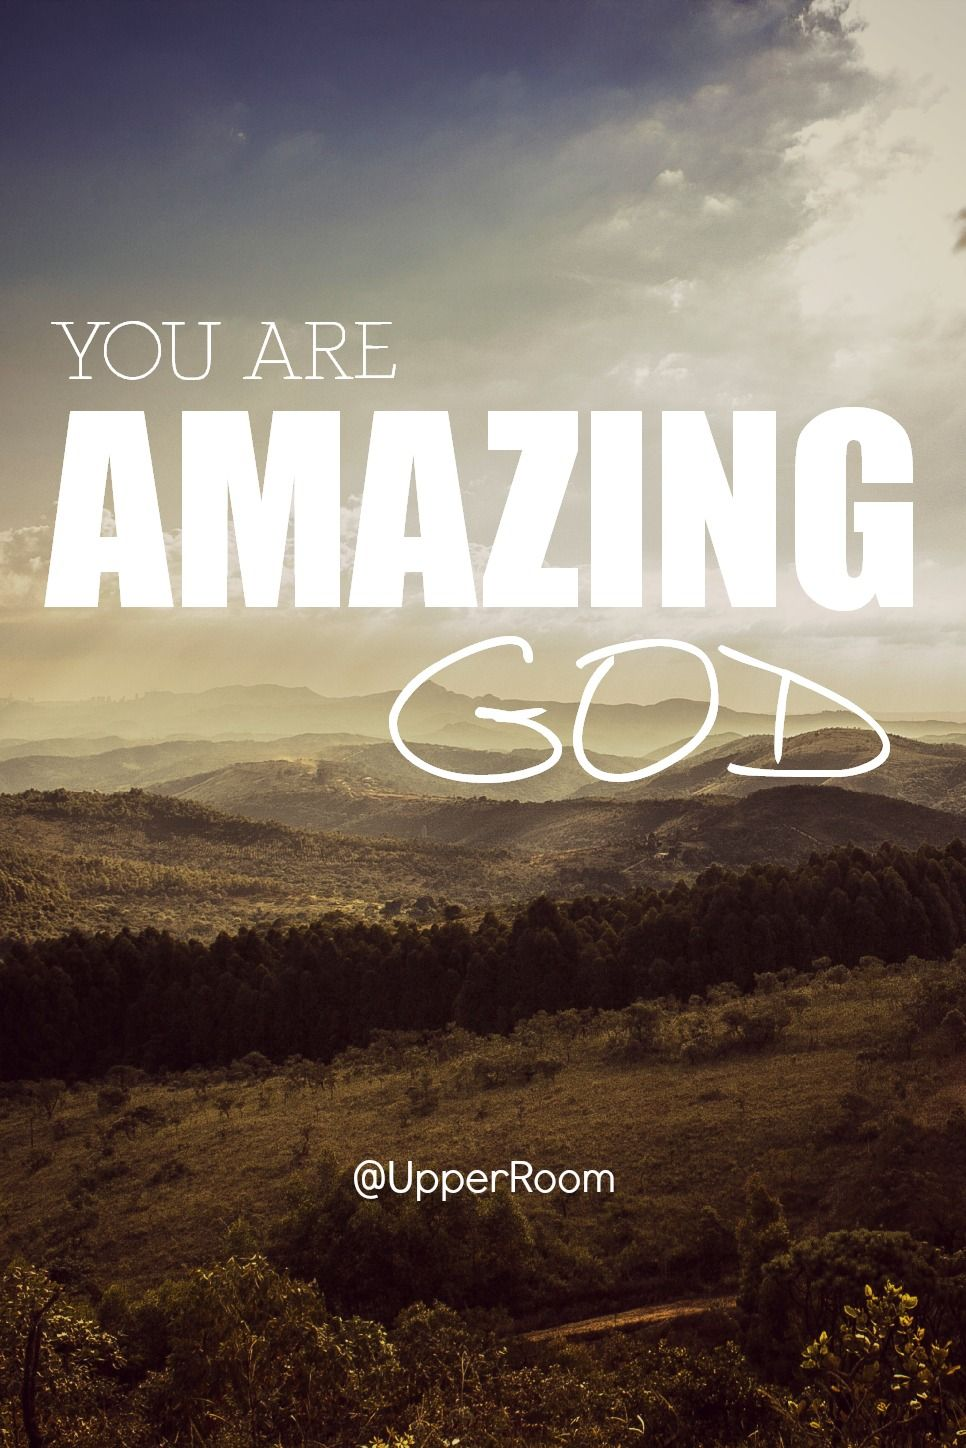 We serve and are loved by an amazing God. And he can do amazing things for you AND through you.